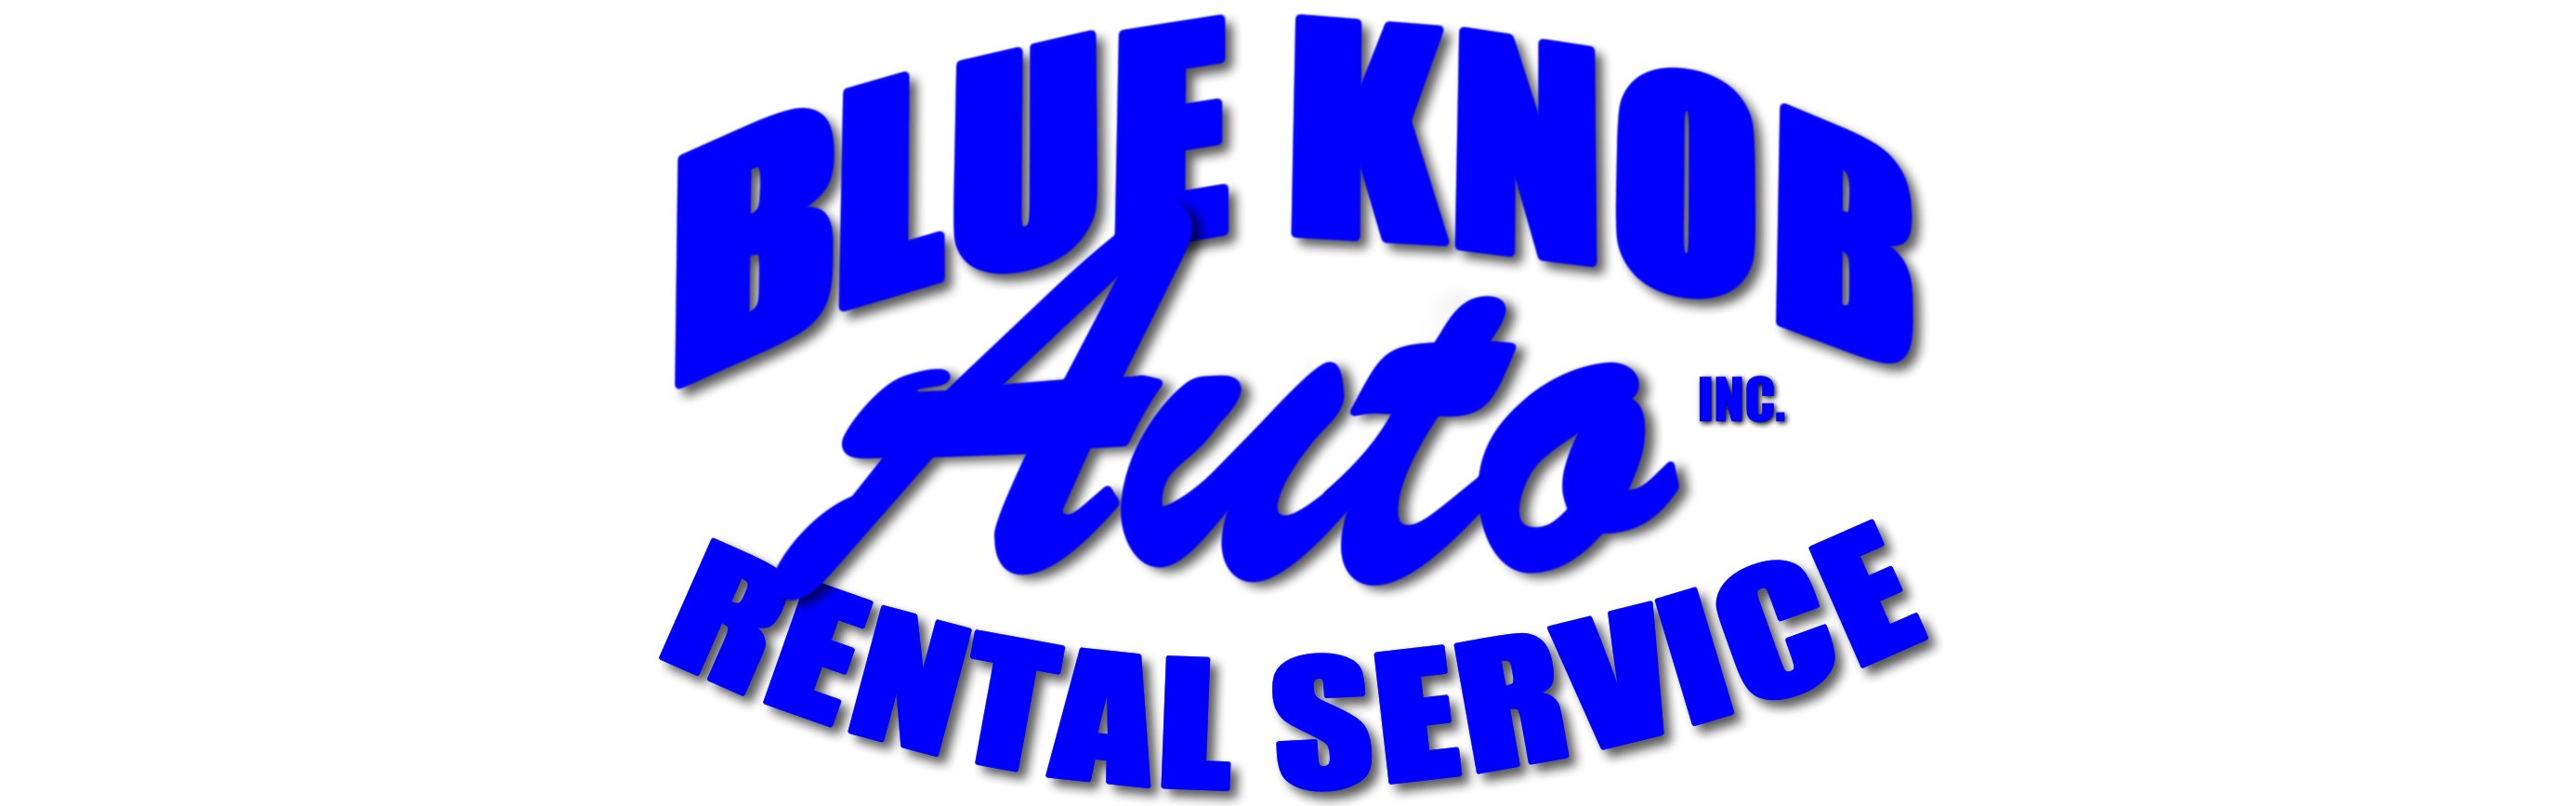 Car rentals in duncansville pa reserve your vehicle today blue knob auto service center